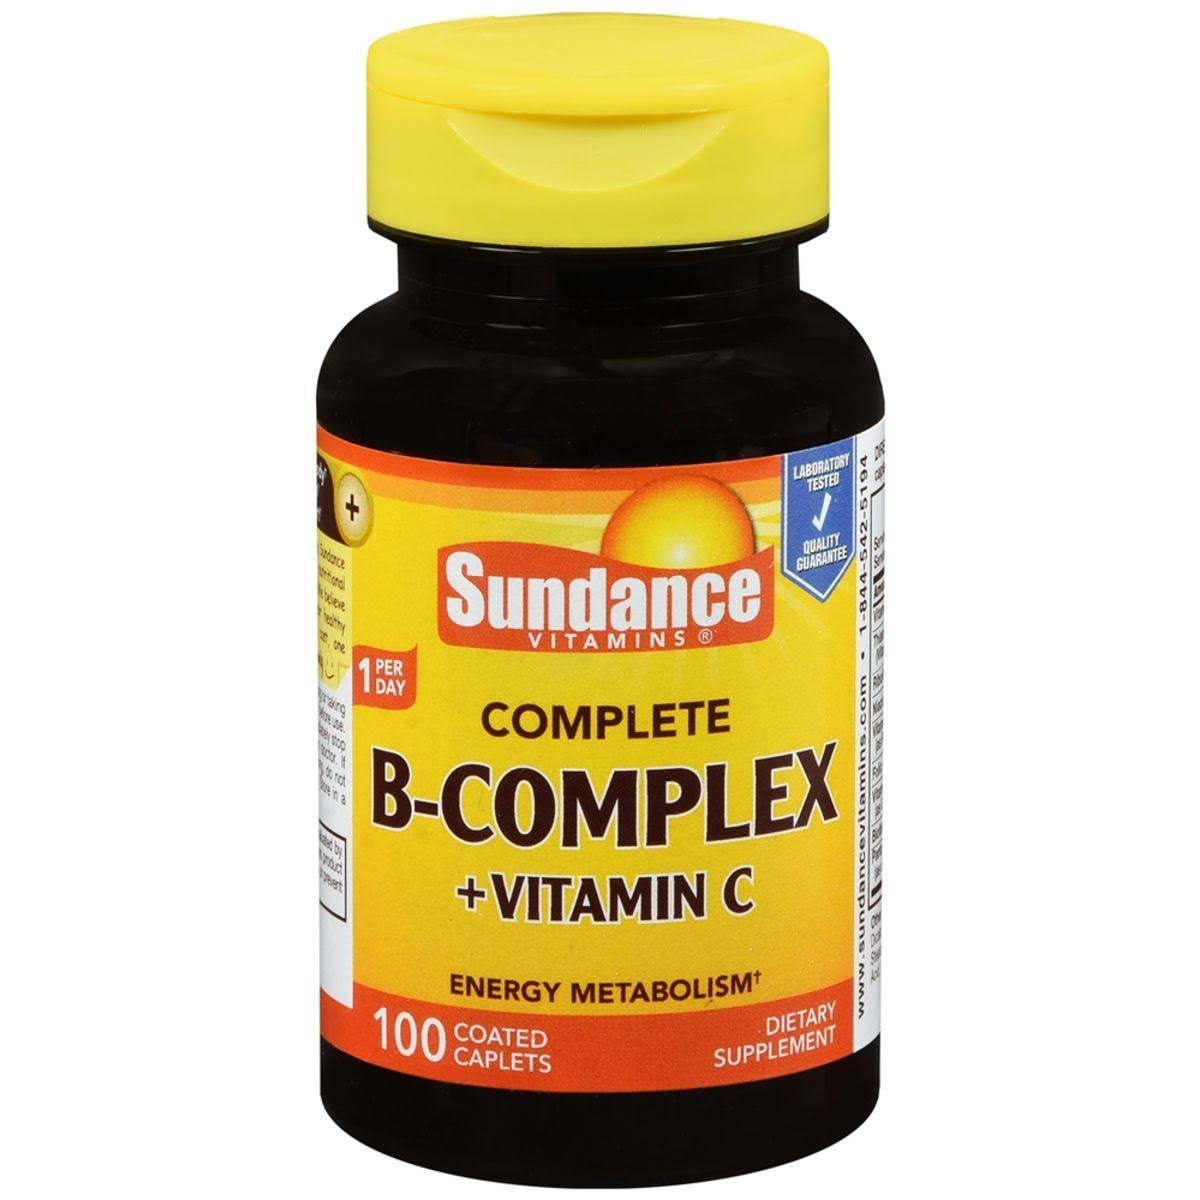 Sundance Complete B Complex Plus Vitamin C Supplement - 100 Tablets